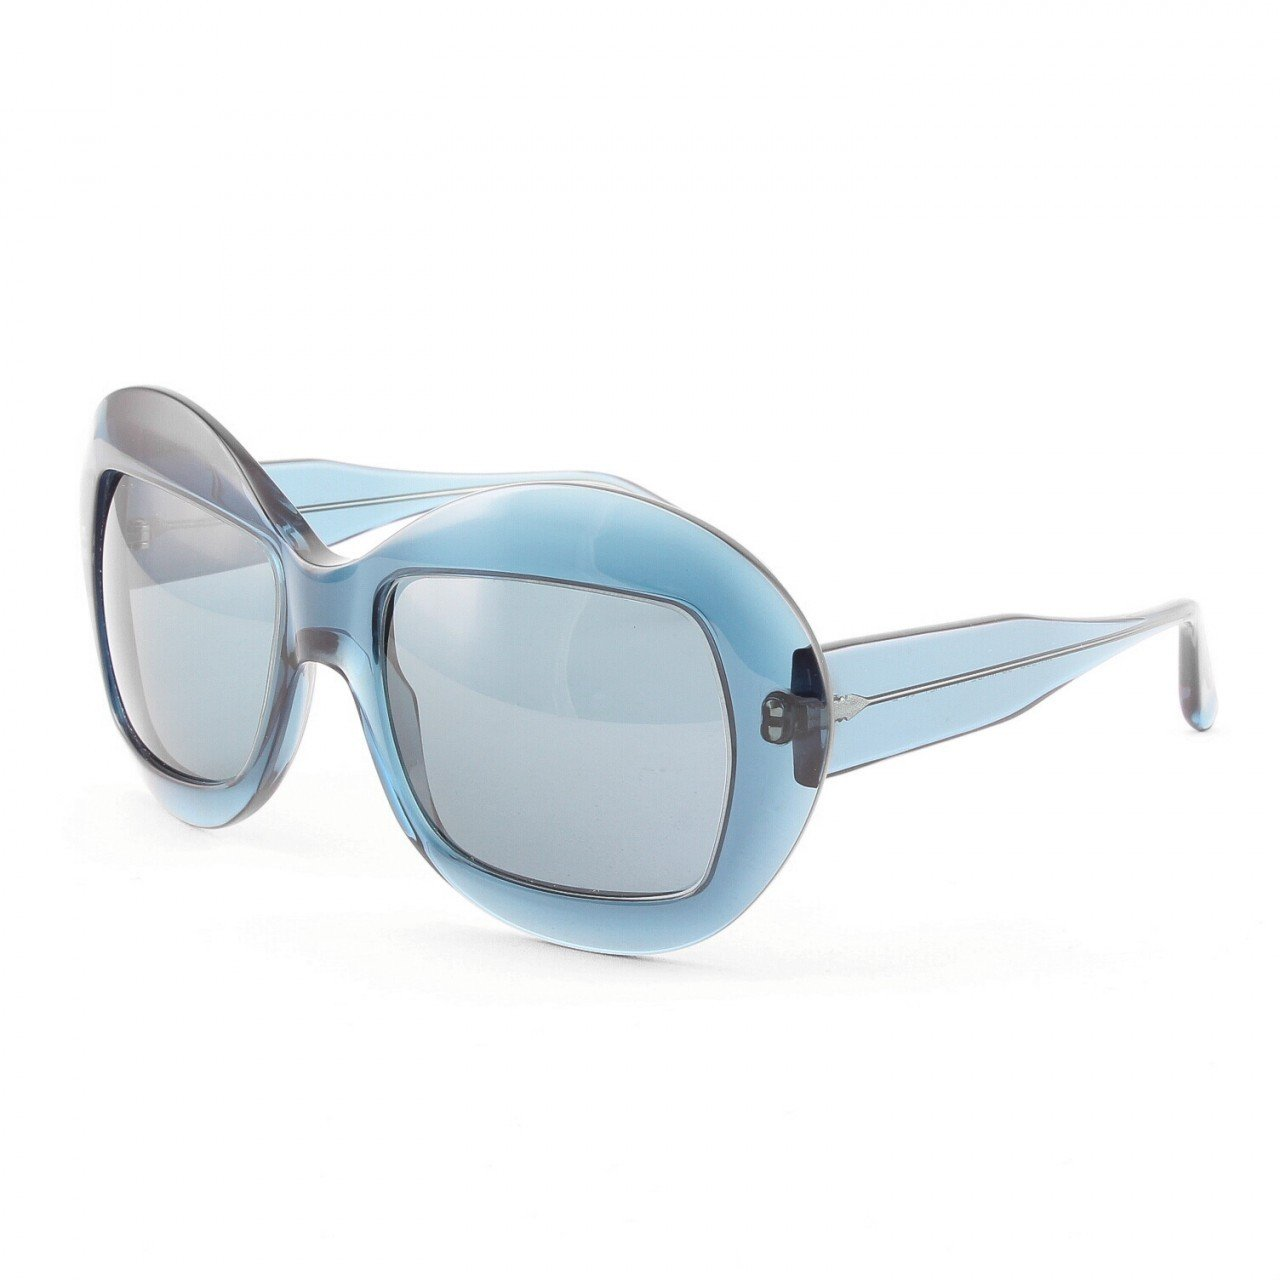 Marni MA186S Sunglasses Col. 03 Translucent Navy Blue with Blue Lenses